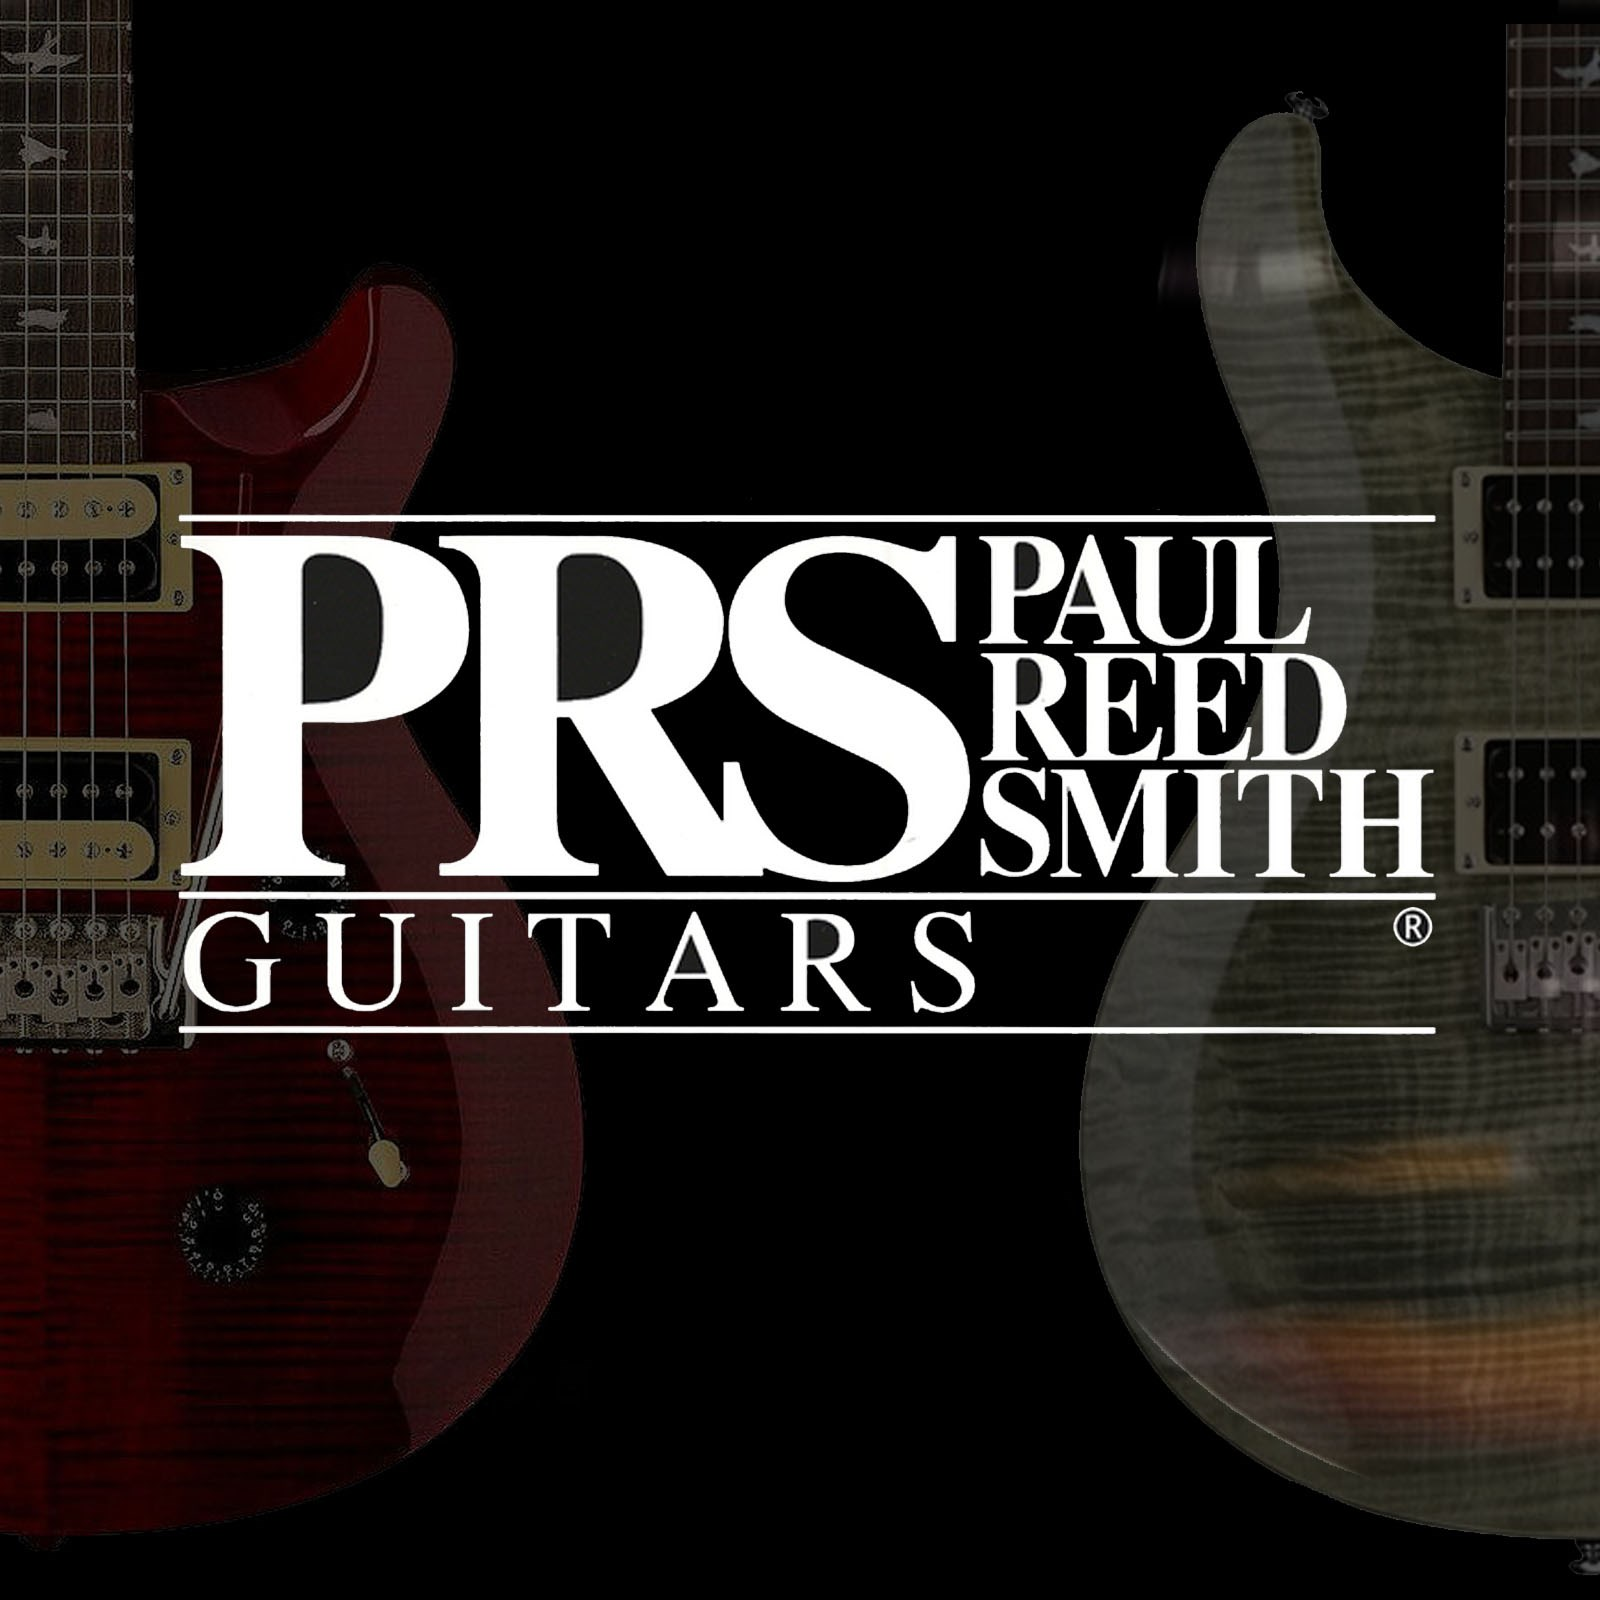 PRS electric guitars